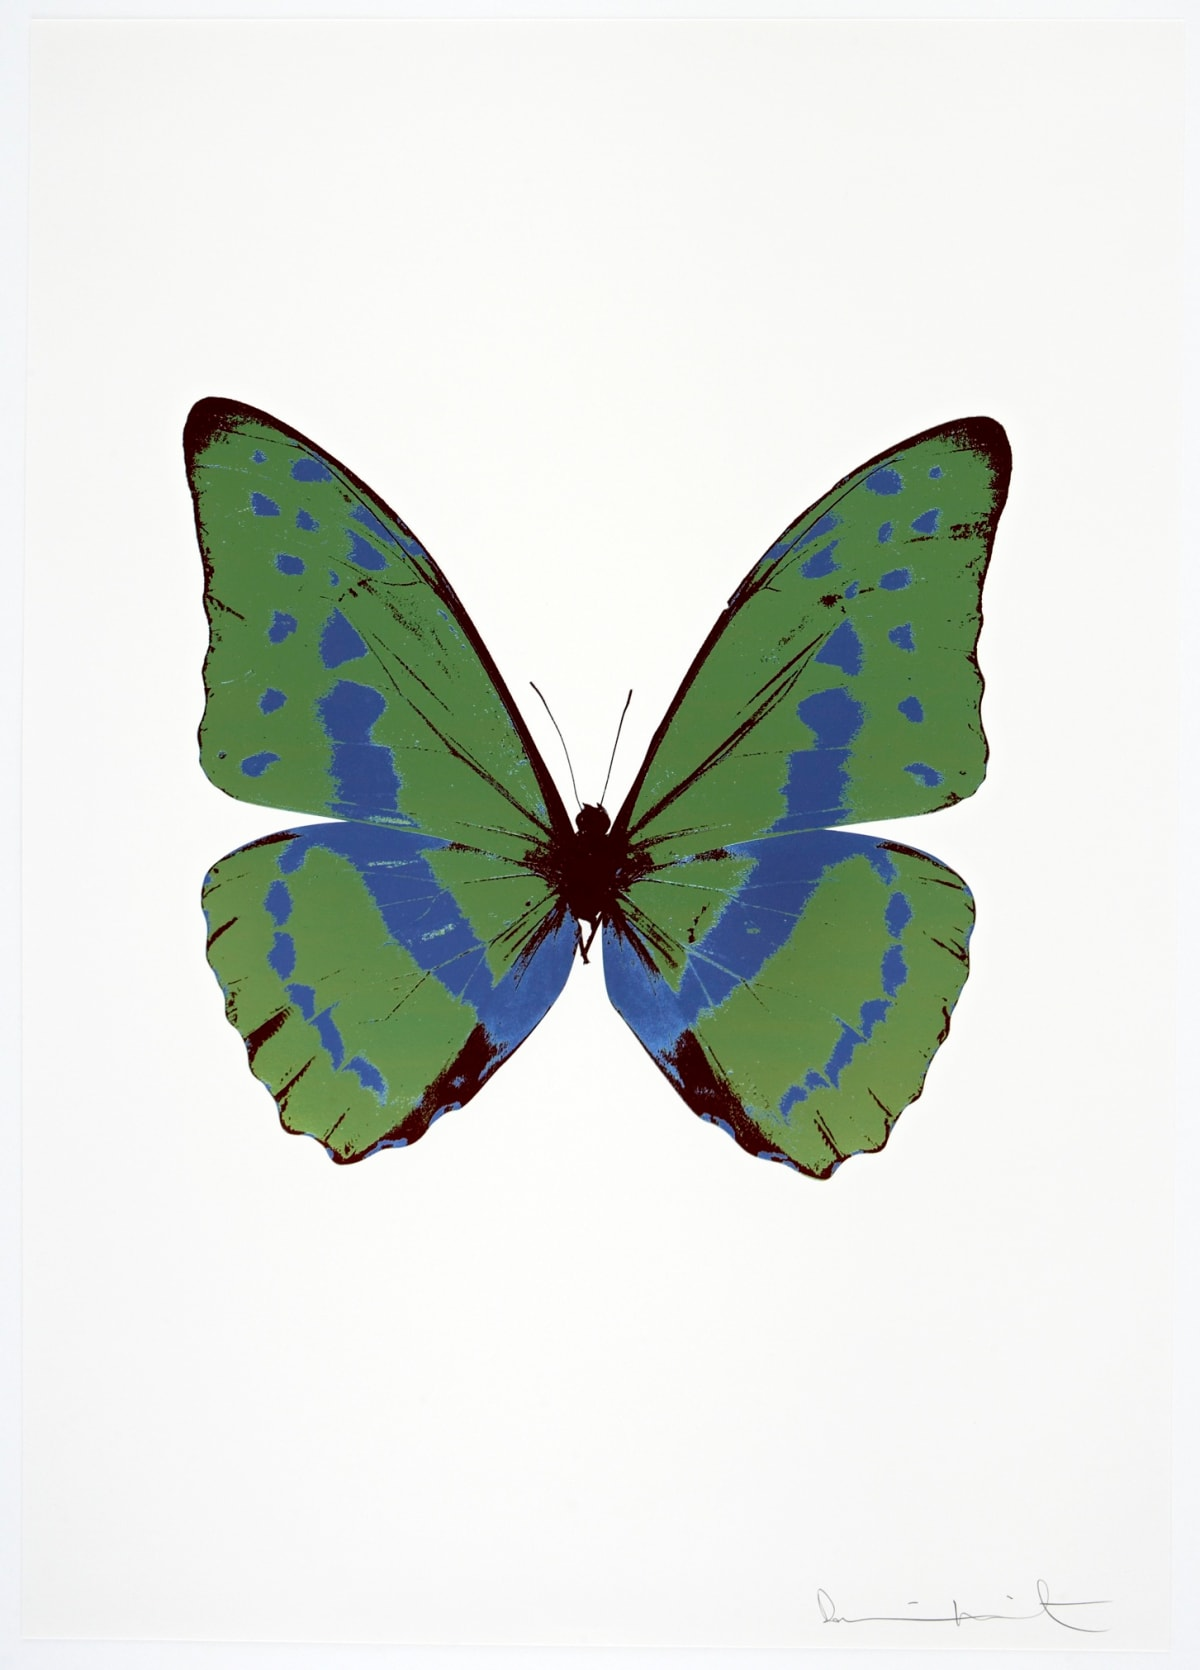 Damien Hirst The Souls III - Leaf Green/Frost Blue/Burgundy, 2010 3 colour foil block on 300gsm Arches 88 archival paper. Signed and numbered. Published by Paul Stolper and Other Criteria 72 x 51cm OC7914 / 660-17 Edition of 15